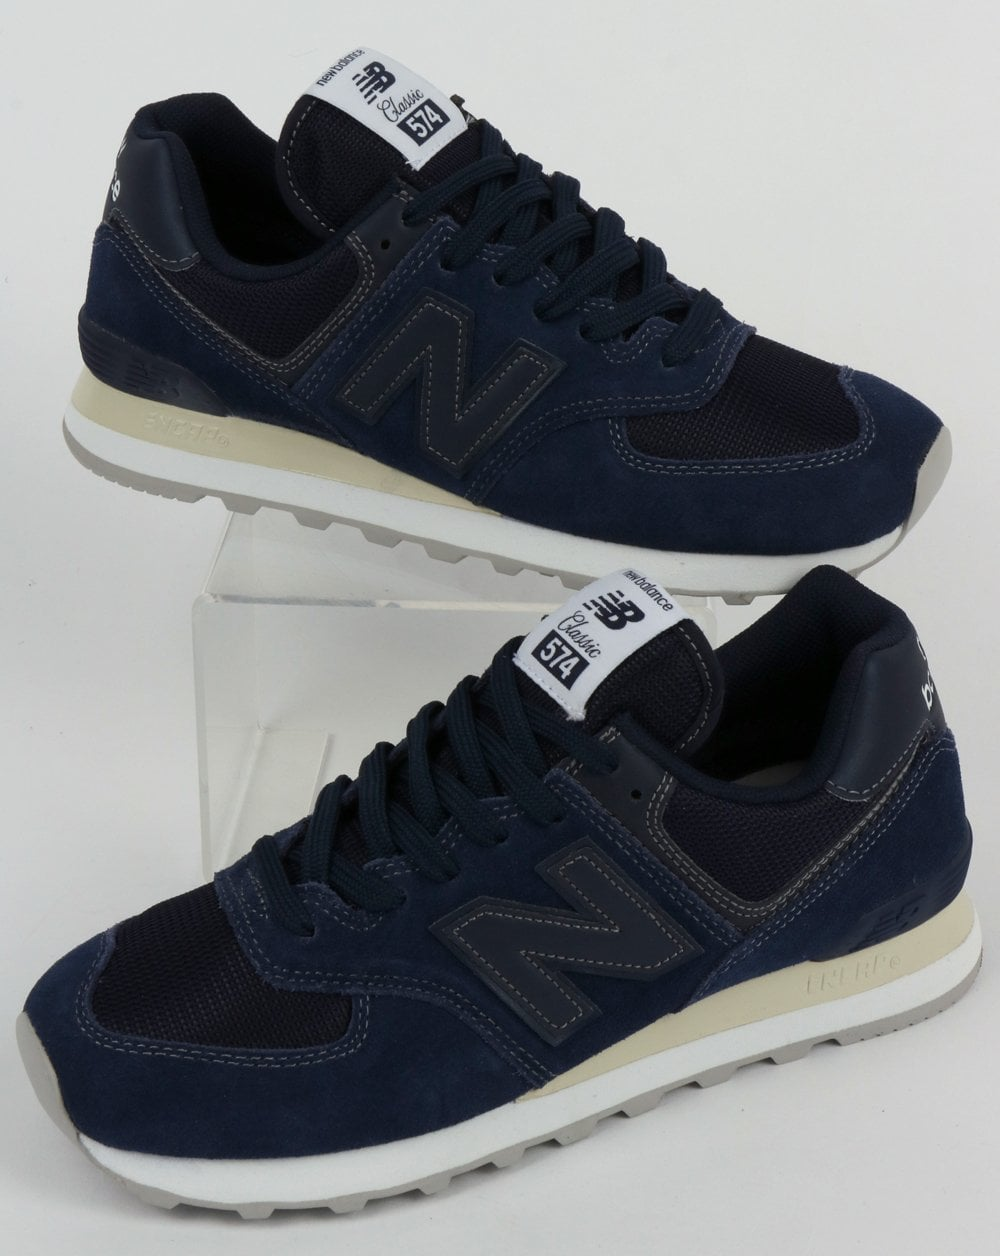 timeless design e6c00 7fcc1 New Balance 574 Trainers Navy Blue